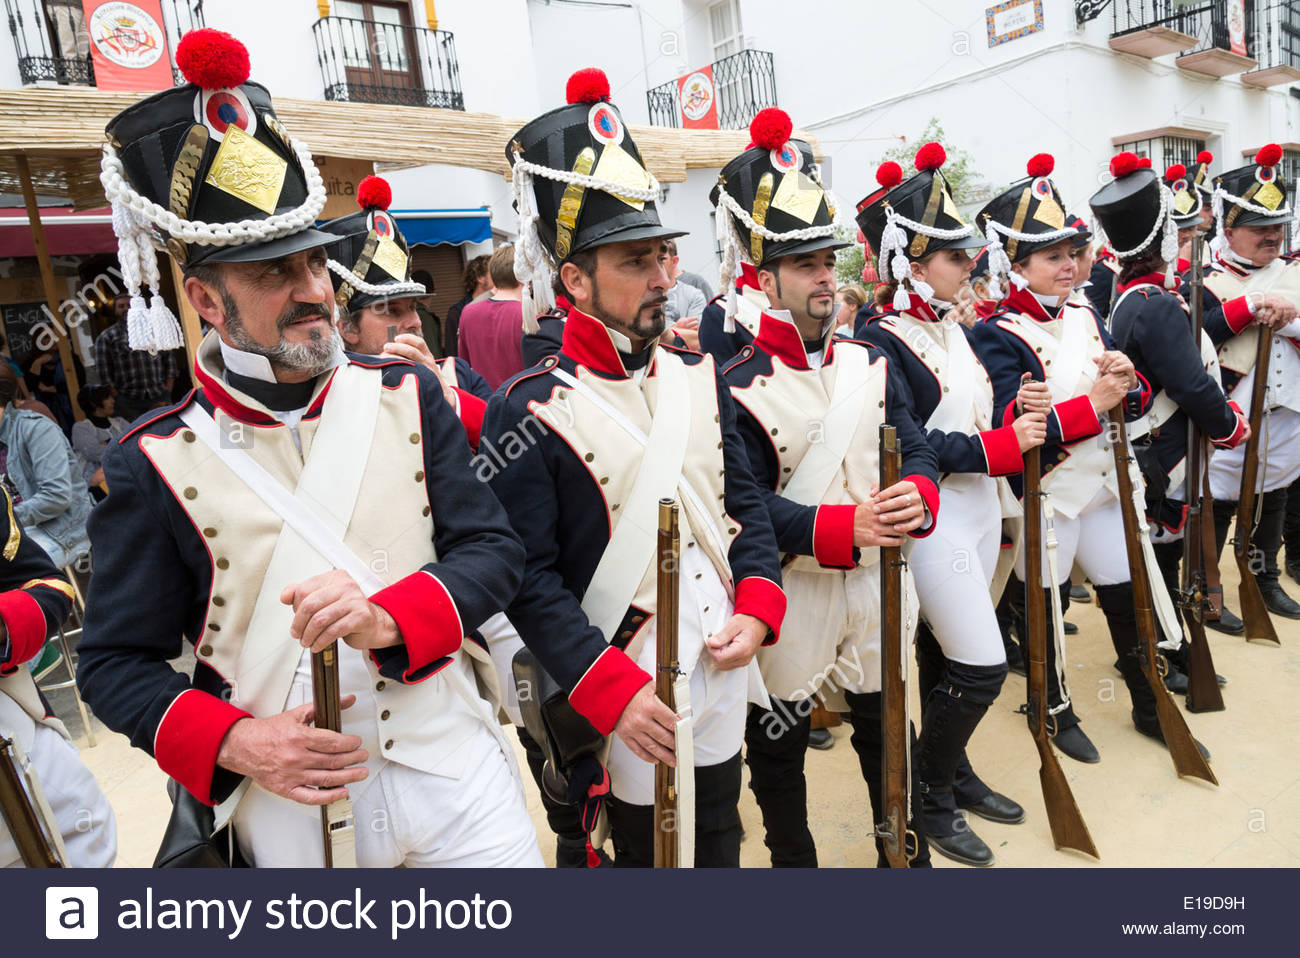 Men dressed as Napoleonic troops for the annual re-enactment of the 2 May 1810 French invasion of Algodonales, Andalucia, Spain - Stock Image